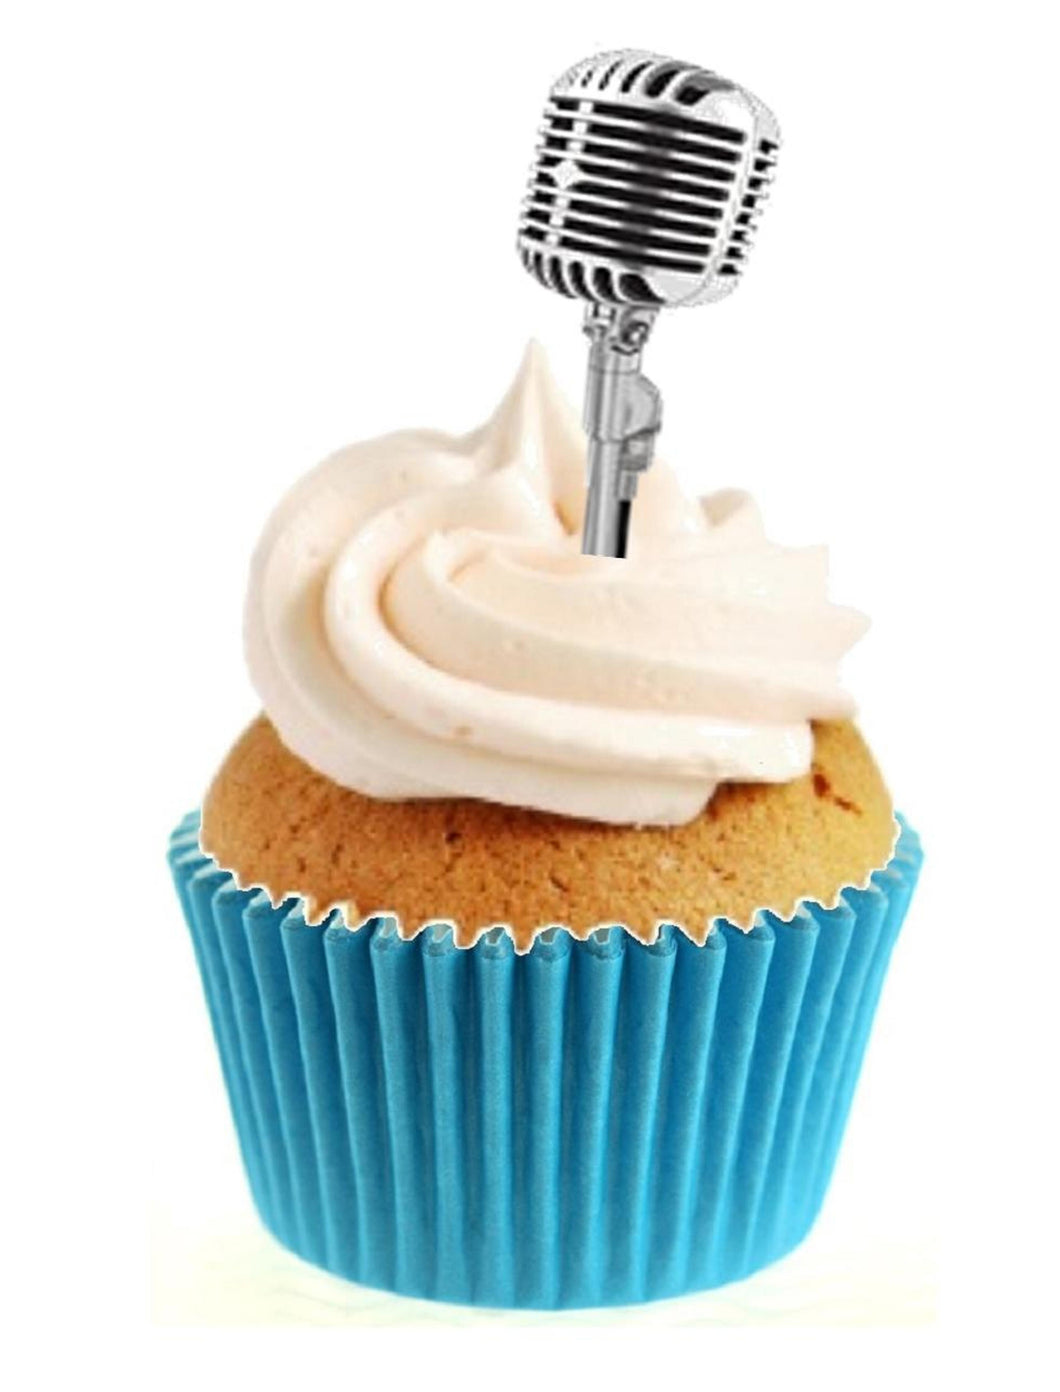 Vintage Microphone Stand Up Cake Toppers (12 pack)